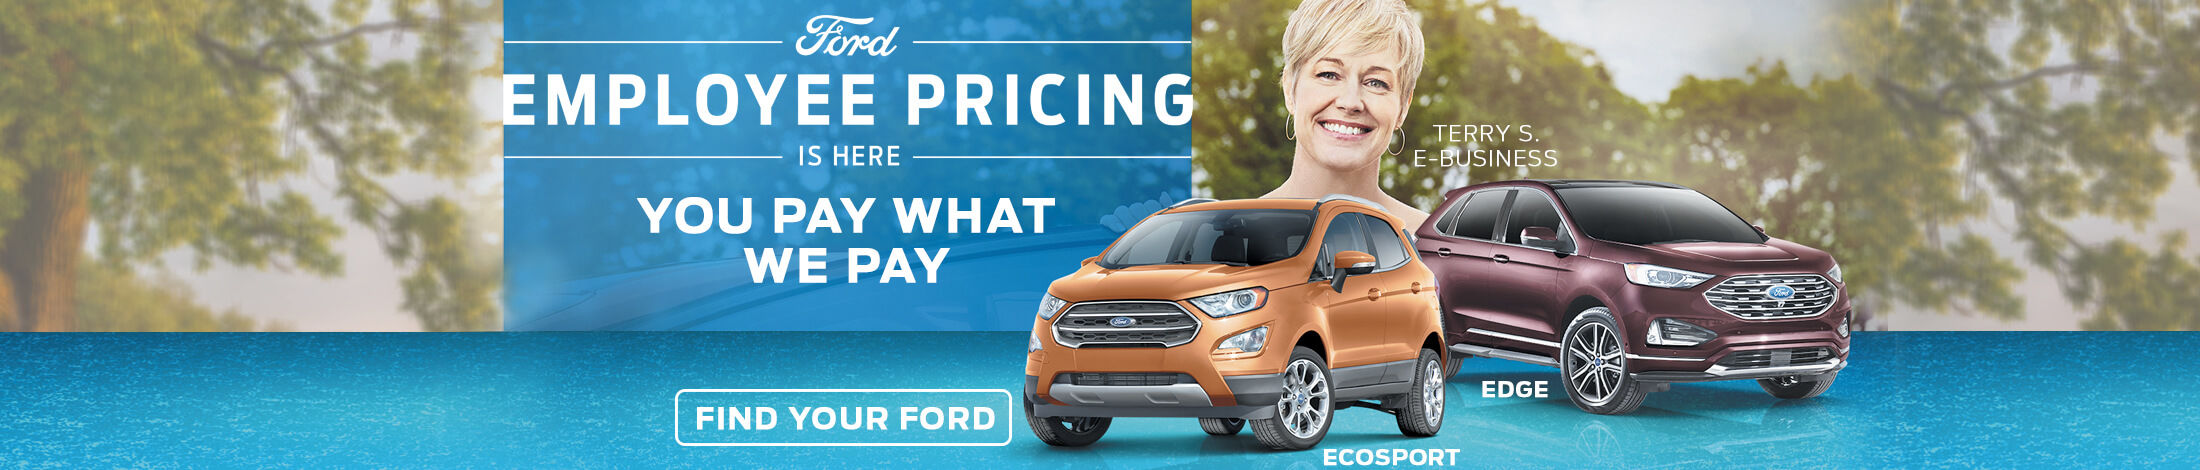 Ford employee pricing is here